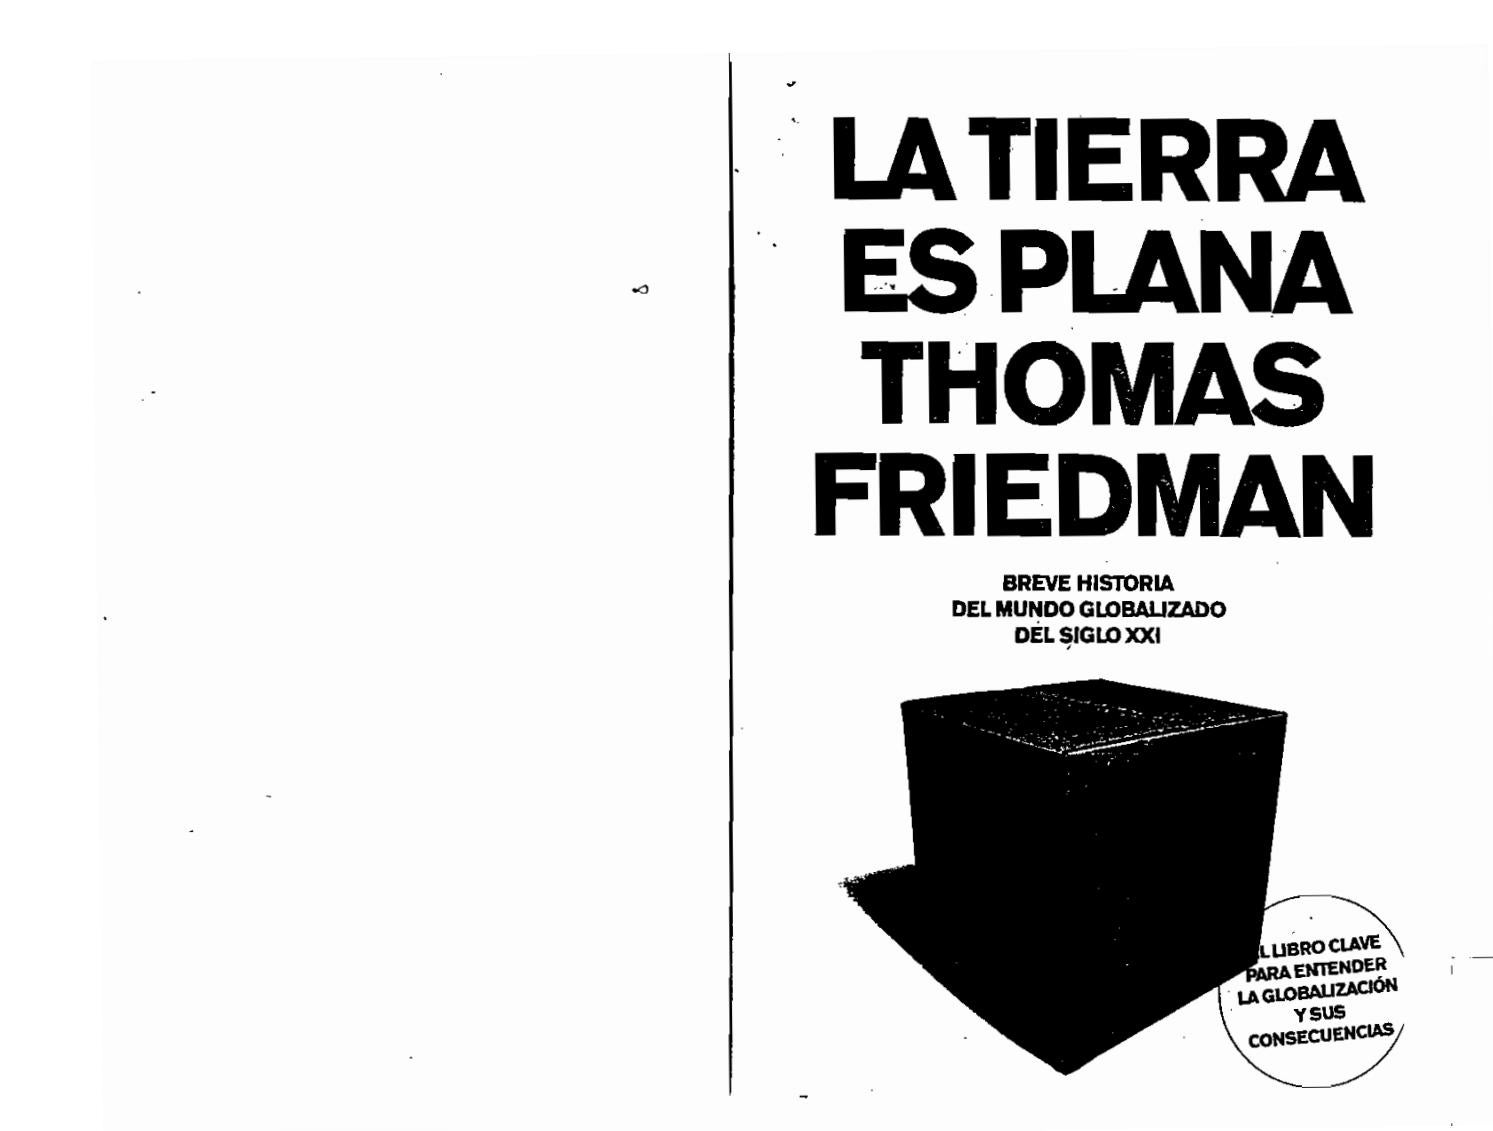 Thomas friedman la tierra es plana by Andrea Hilbk - issuu 4db4e314341